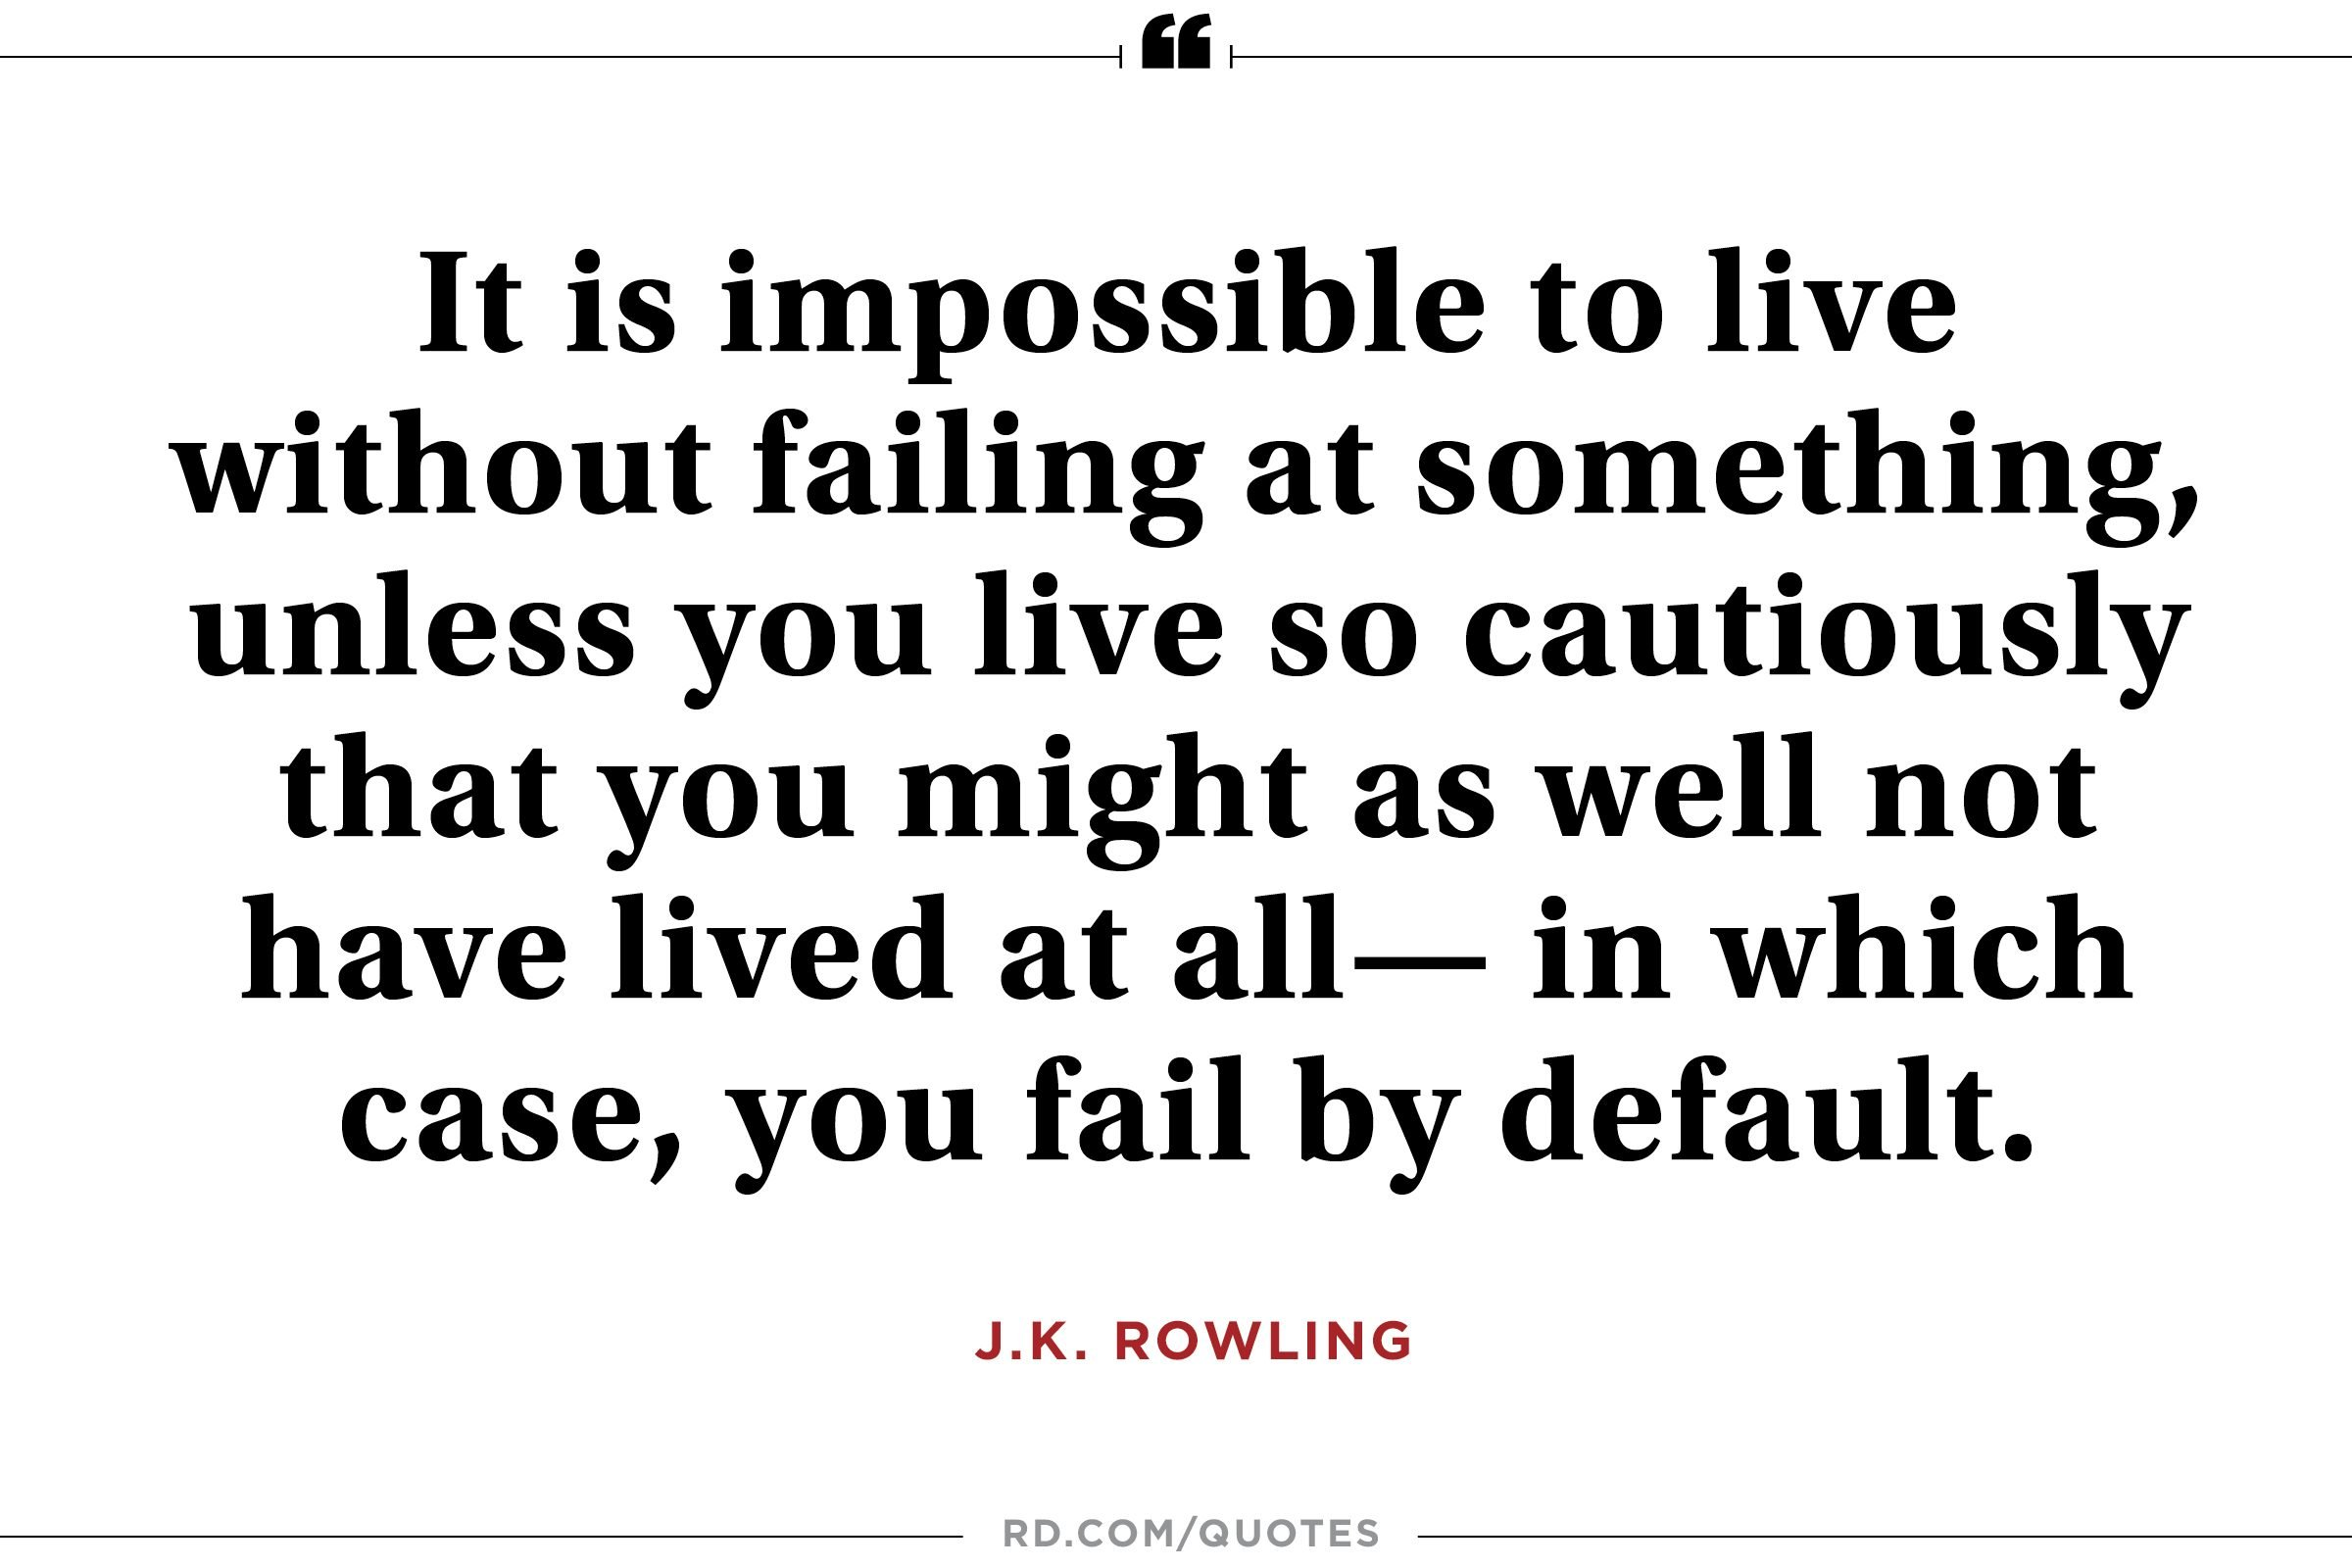 8 j k rowling quotes to motivate you through any slump